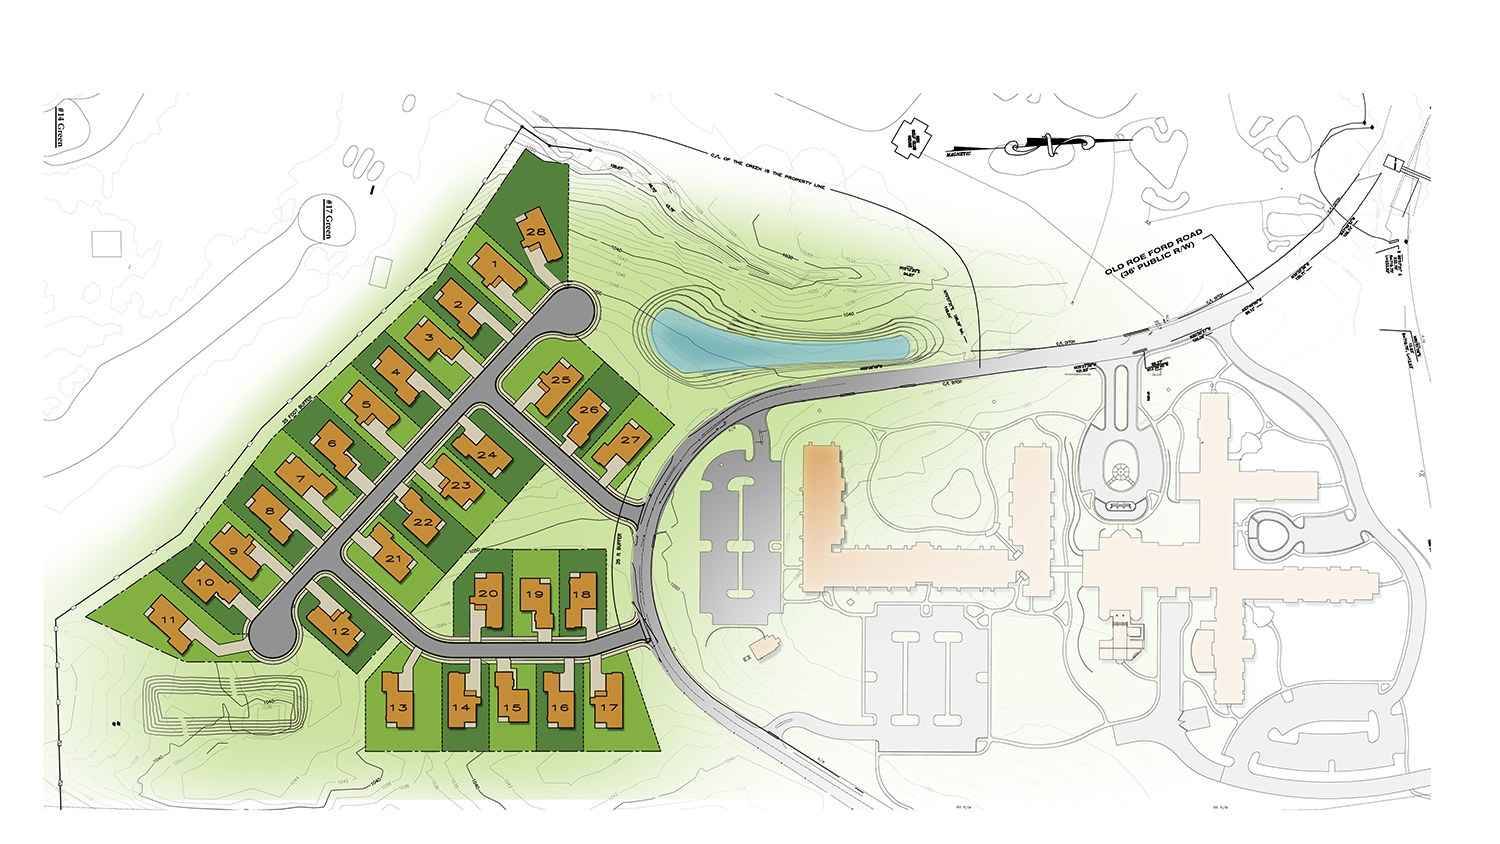 The Woodlands at Furman is adding 28 homes on the southern end of its 22-acre campus. (Rendering/Provided)